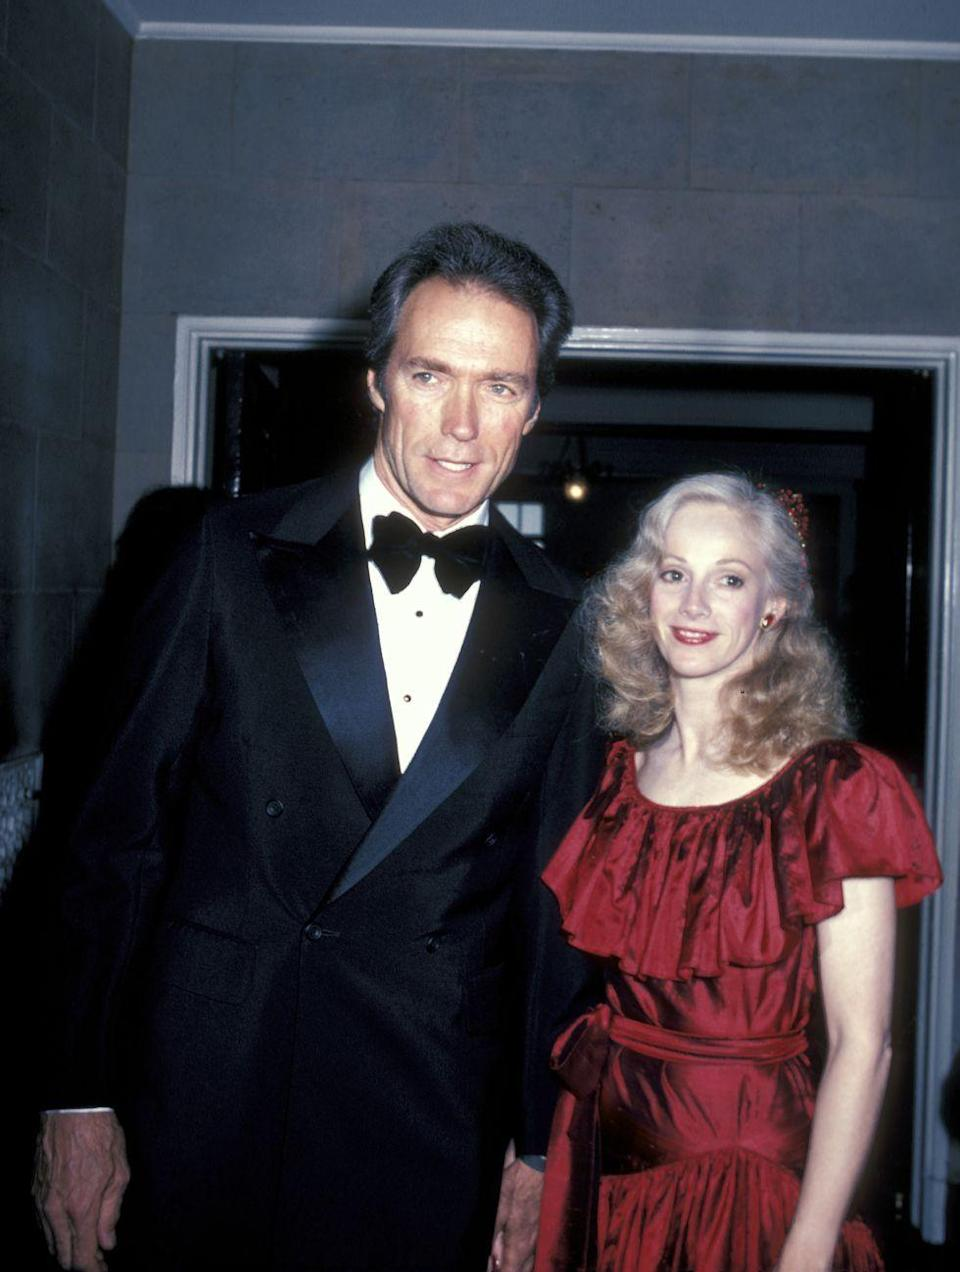 "<p>Actress Sondra Locke and Eastwood struck up a romance on the set of <em>The Gauntlet</em>. Even though Eastwood wasn't divorced from Johnson yet, he moved <a href=""https://abcnews.go.com/Entertainment/clint-eastwoods-women/story?id=20235215"" rel=""nofollow noopener"" target=""_blank"" data-ylk=""slk:into a Bel-Air home with her"" class=""link rapid-noclick-resp"">into a Bel-Air home with her</a>. They were together for 12 years, during which time they made four films together.</p>"